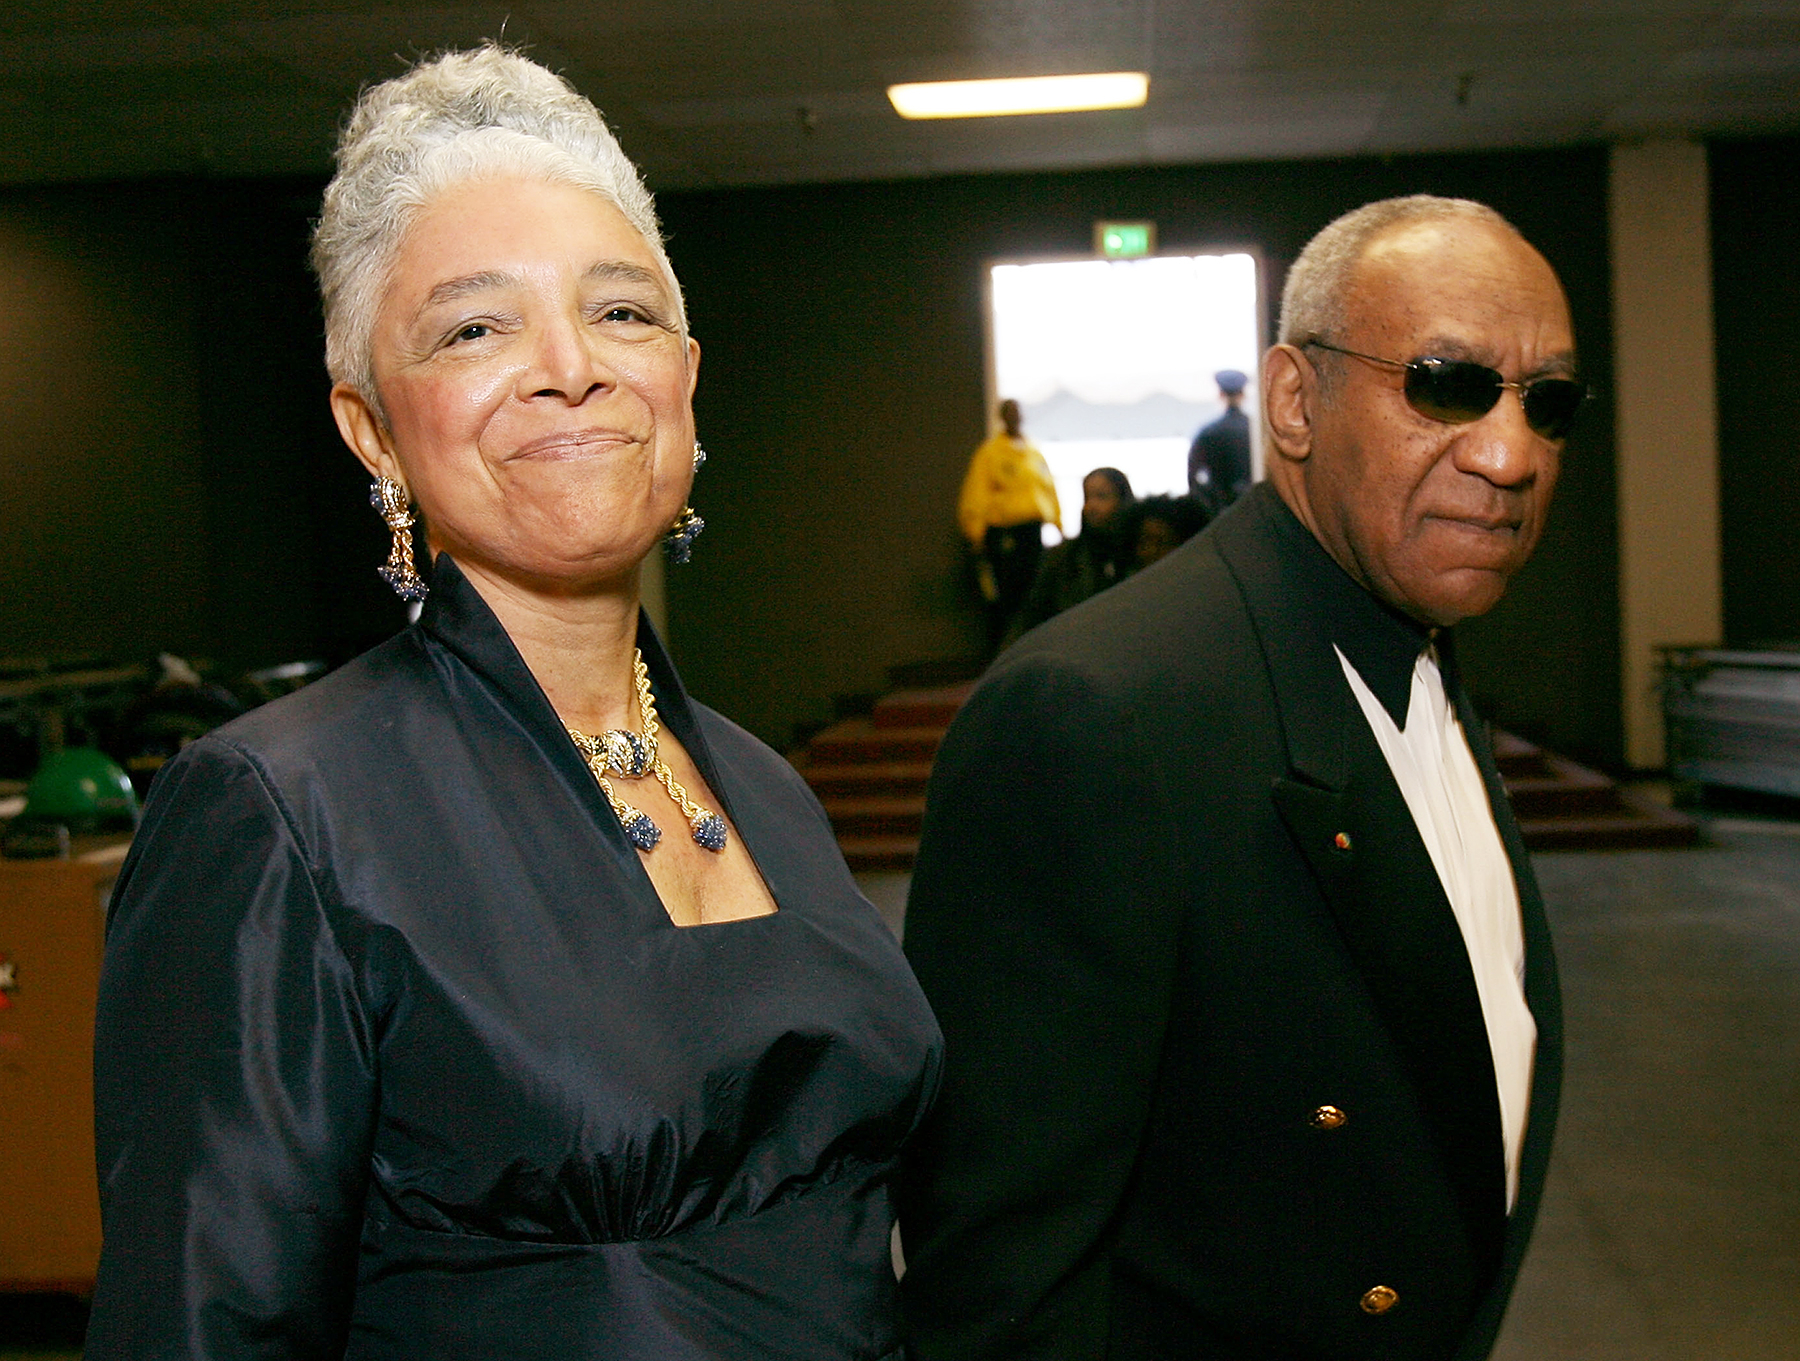 Bill cosby family photos - Celebrity Mugshots Camille Cosby Bill Cosby